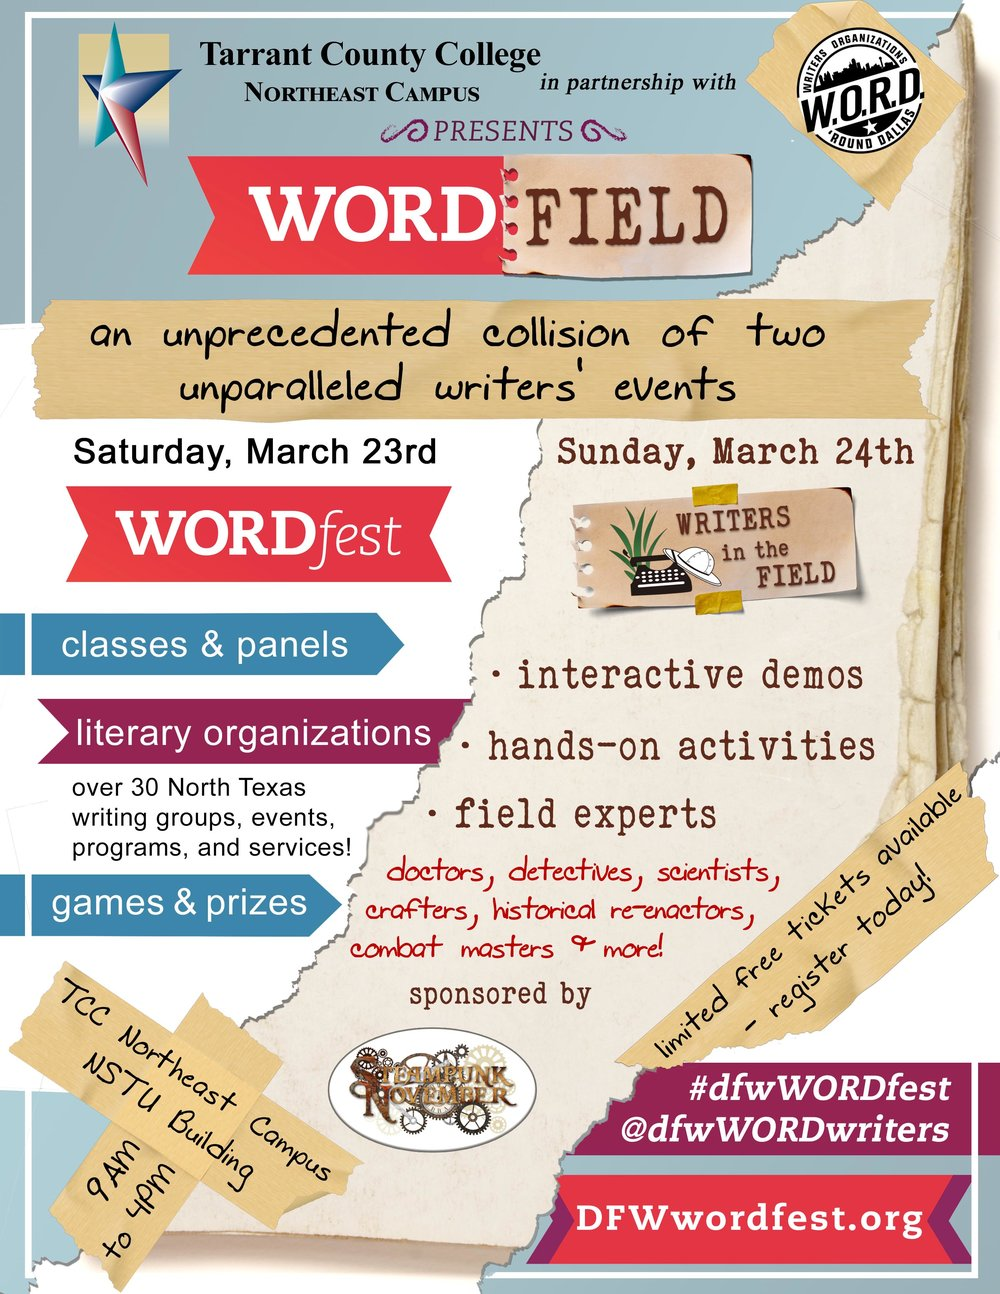 WORDfield Flyer.jpg